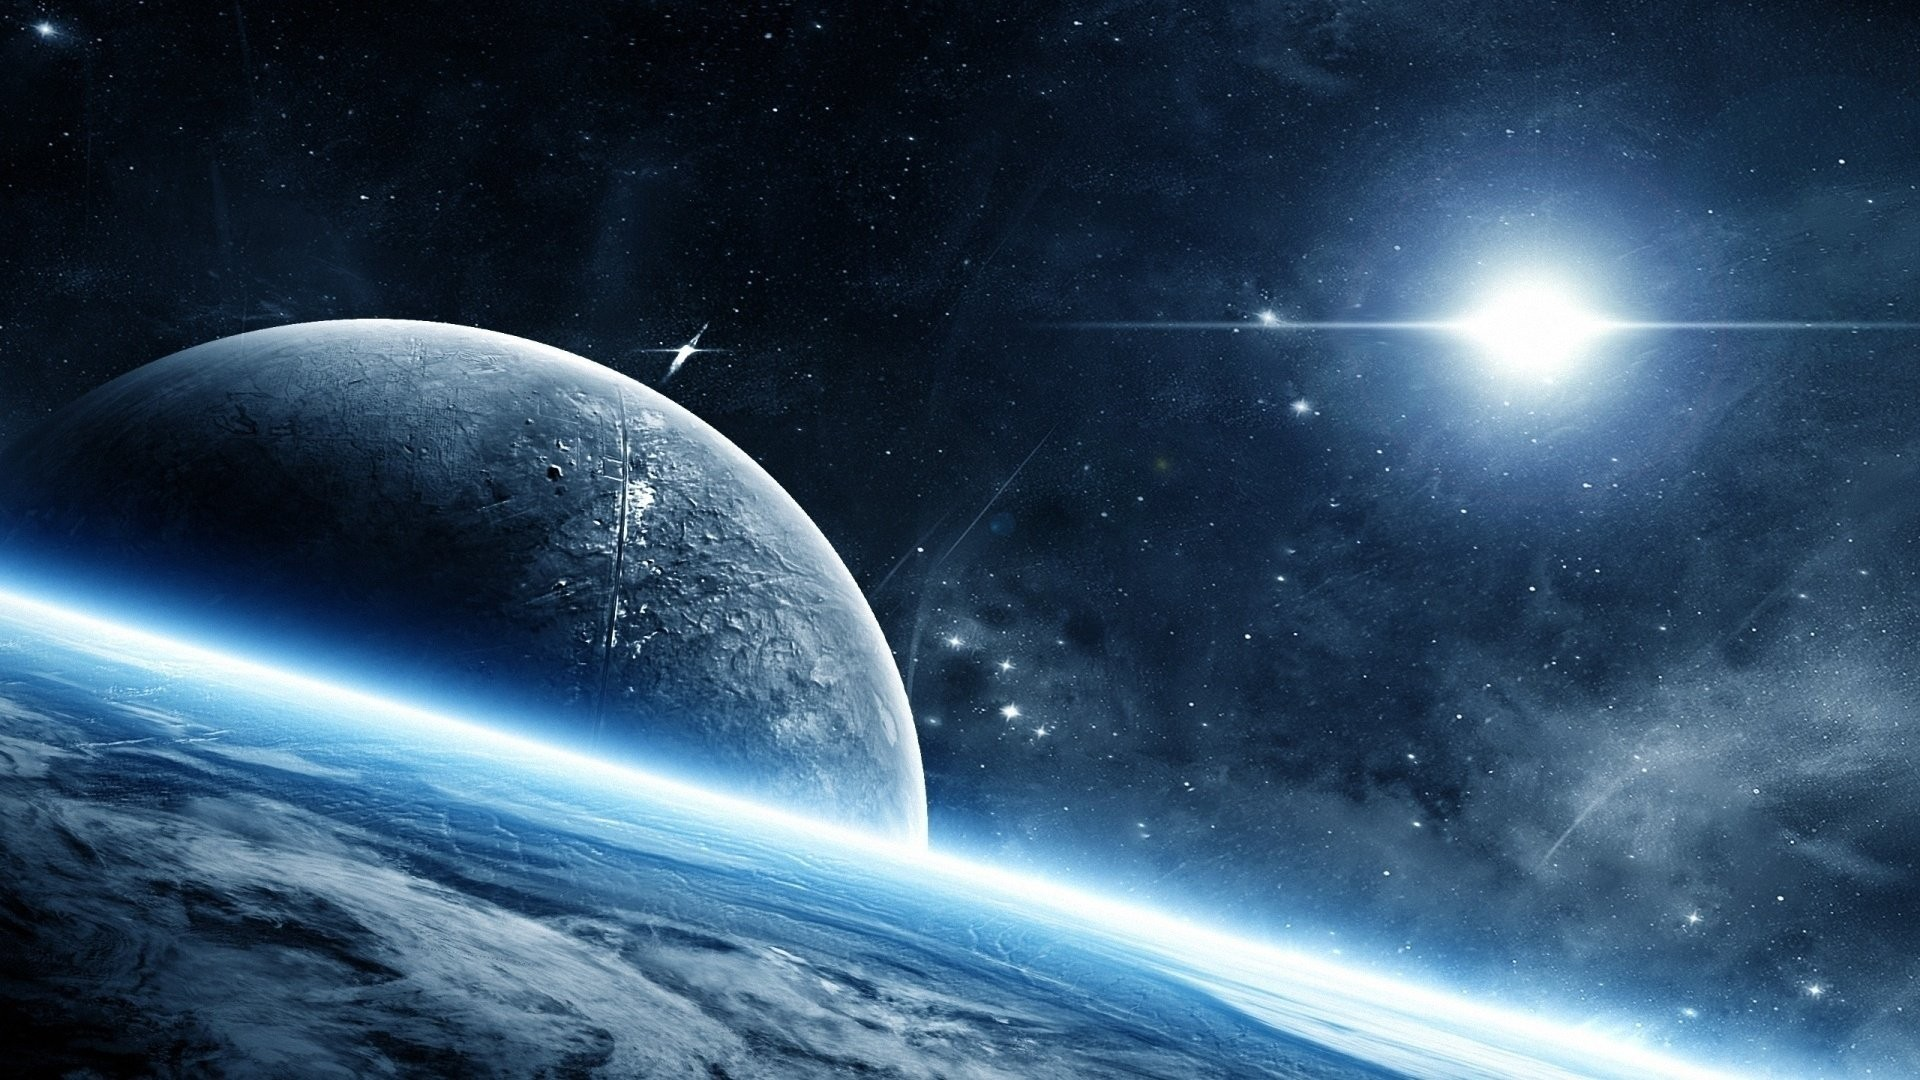 Blue space wallpaper download free amazing wallpapers - Space wallpaper hd 1920x1080 ...